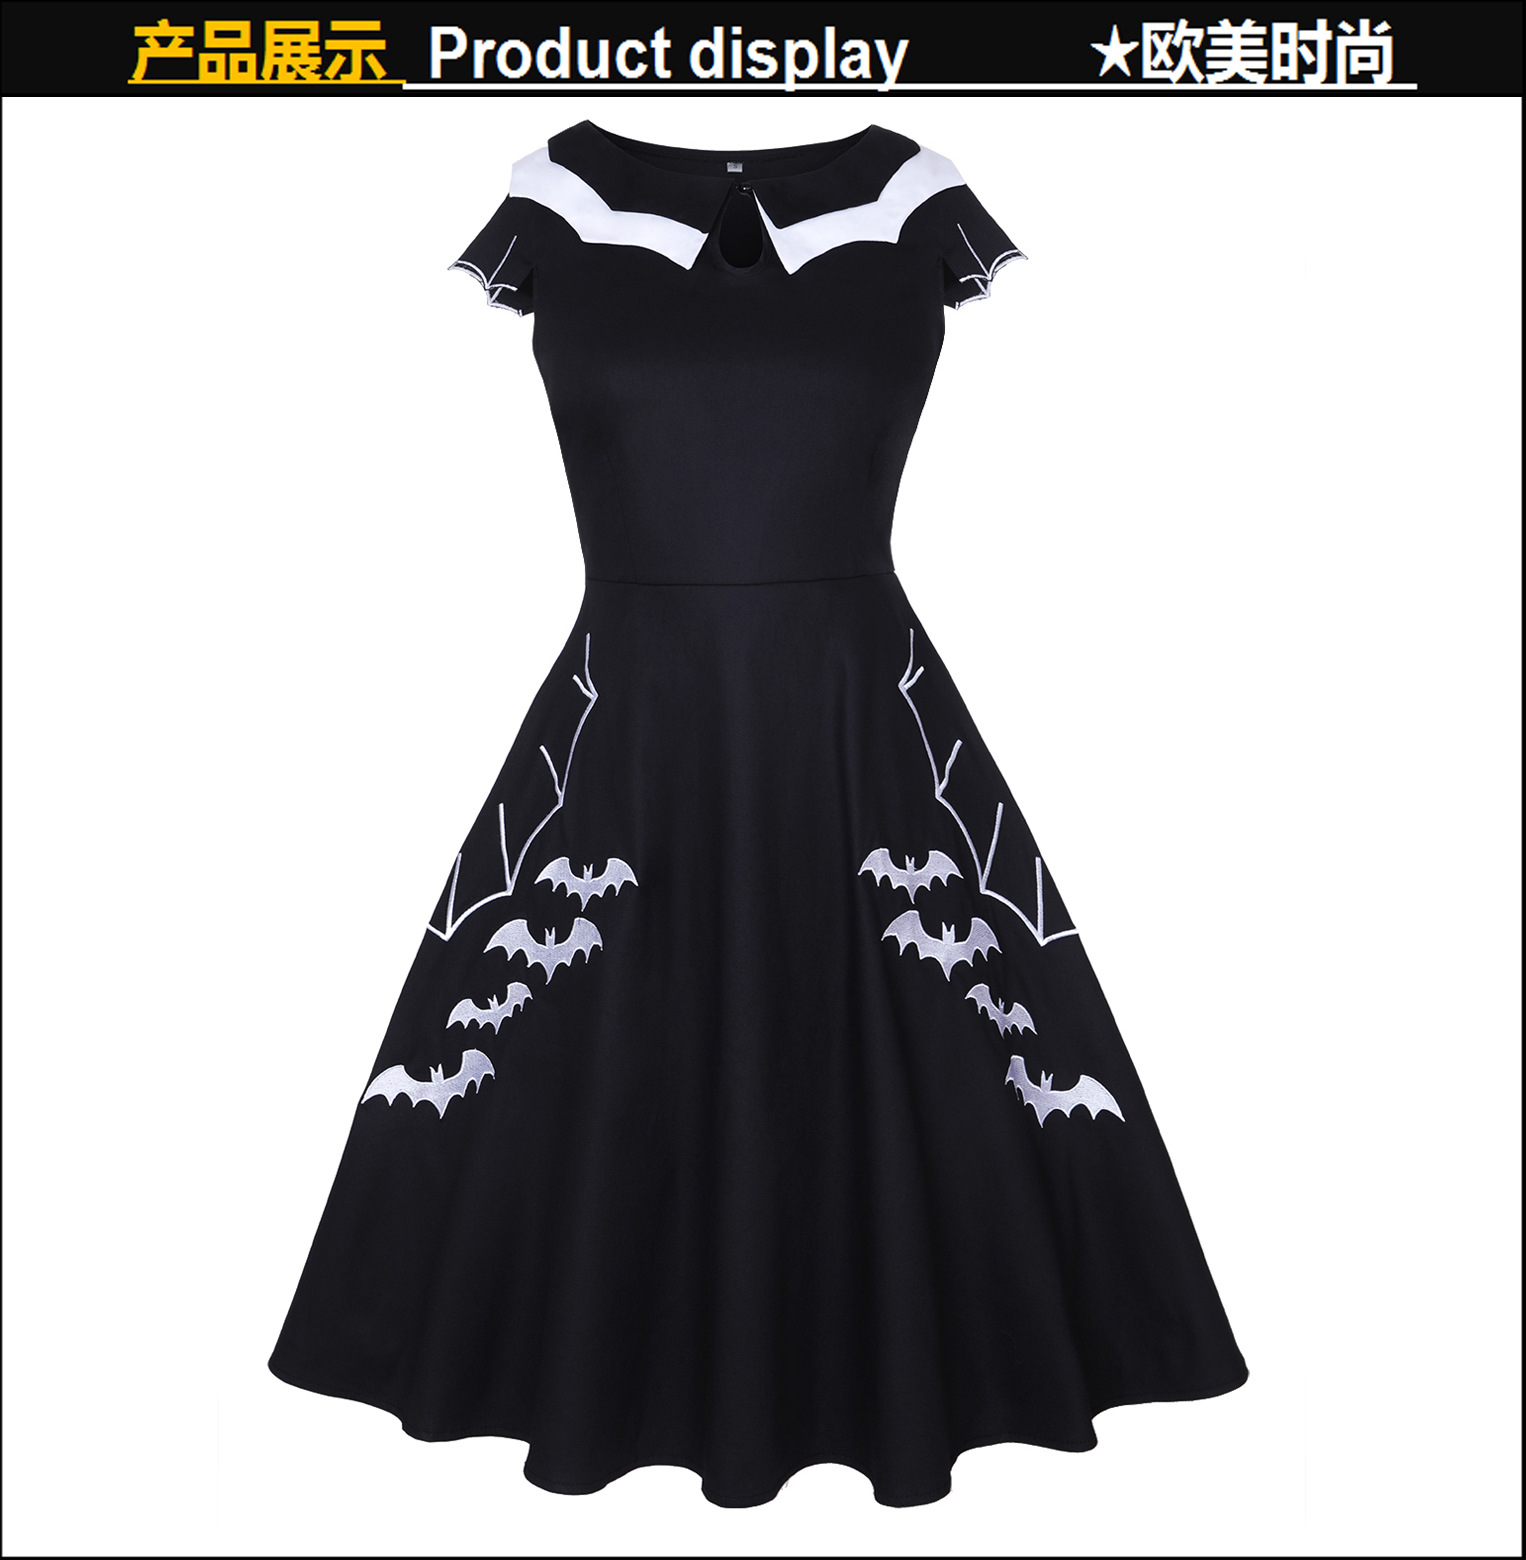 Halloween Bat Embroider Oversize Dress Style With Retro Design Pattern Design And Embroidery Craft For Women 2